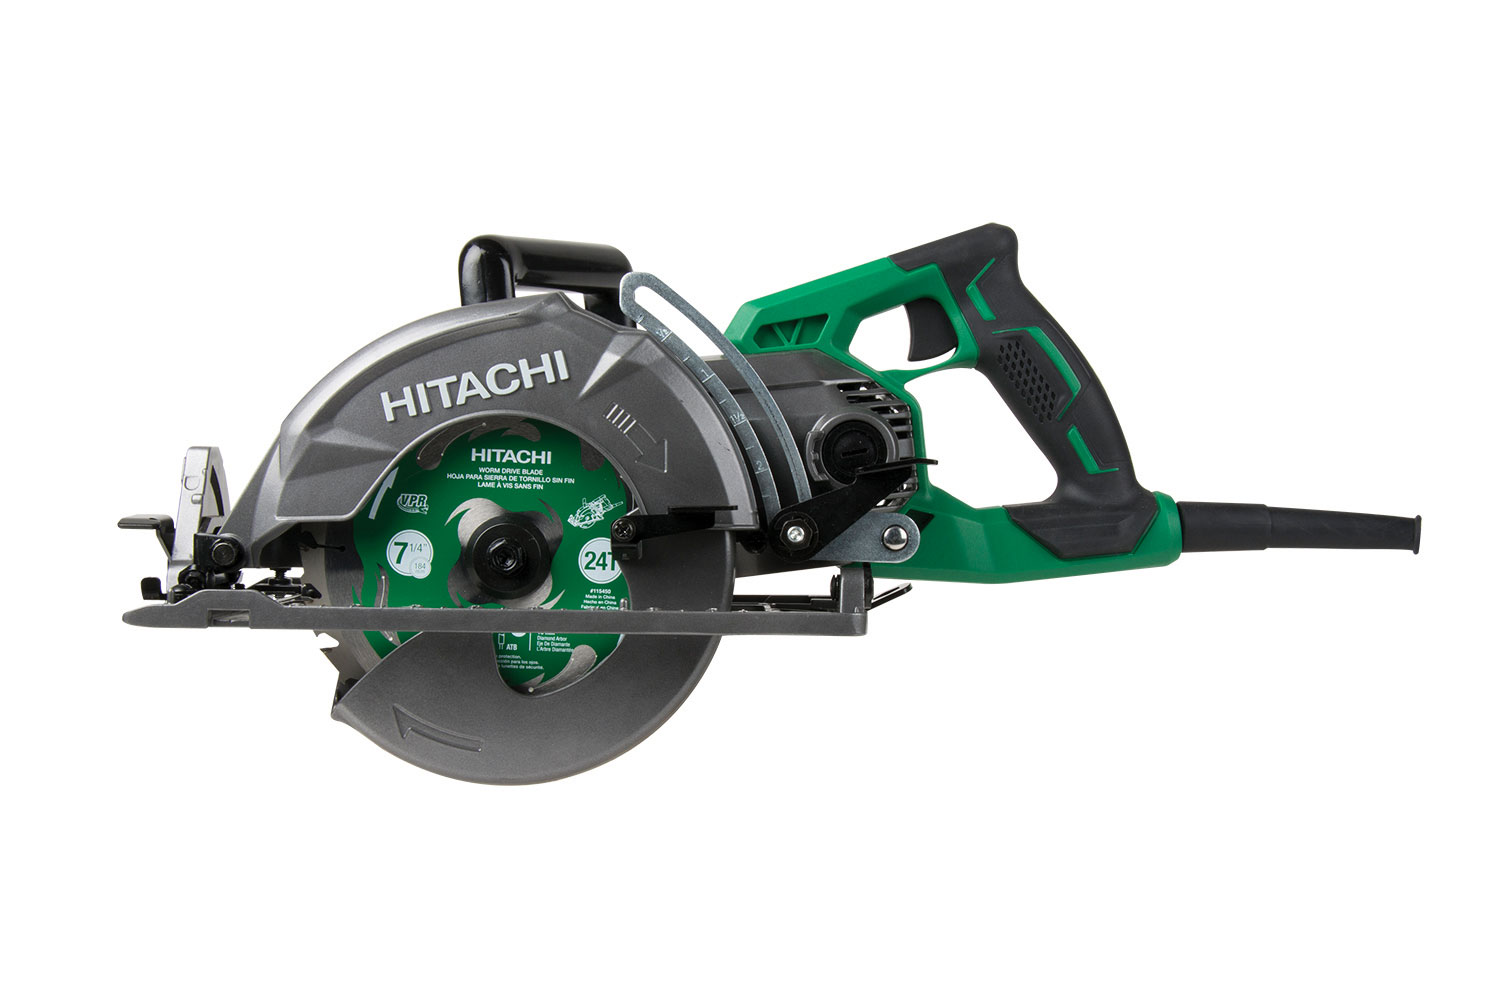 Hitachi Power Tools' Circular Saw